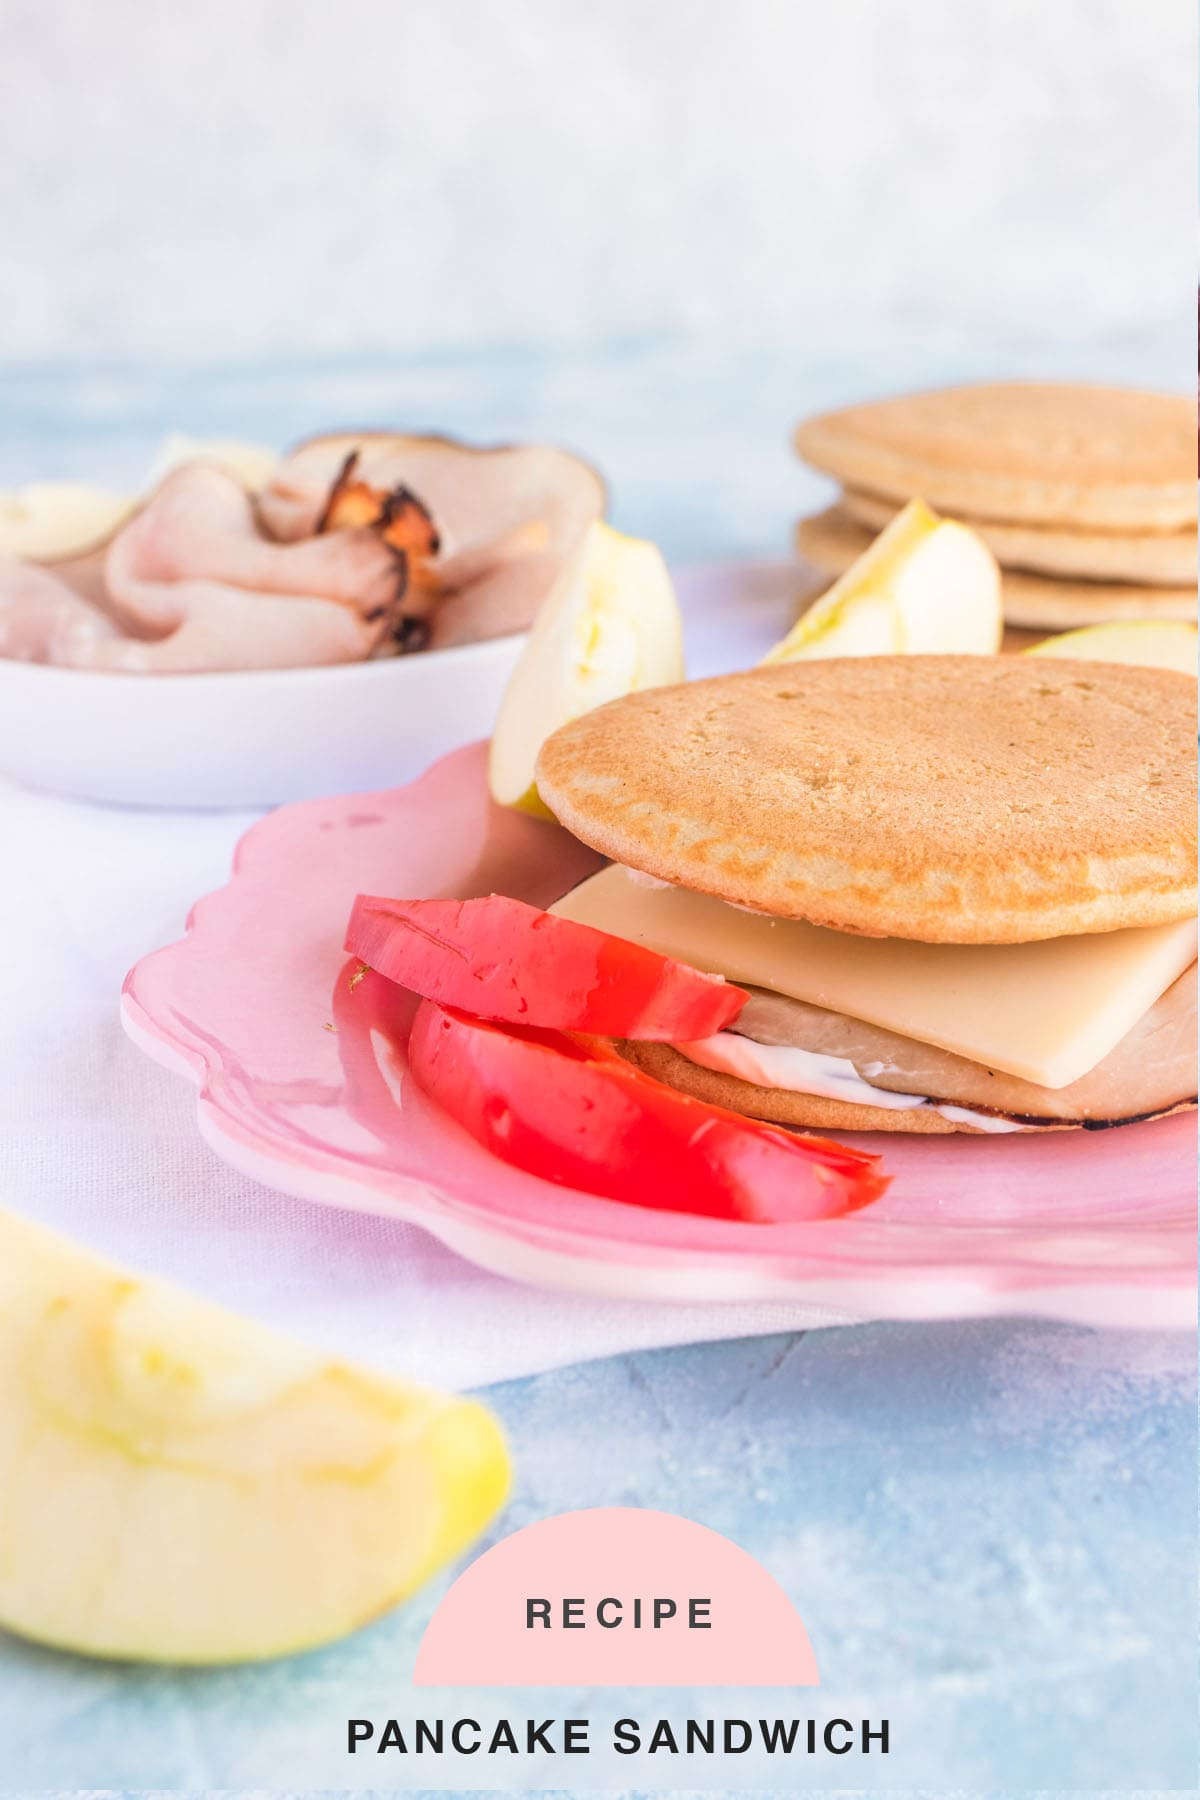 RECIPE Pancake Sandwich by top Houston lifestyle blogger Ashley Rose of Sugar & Cloth